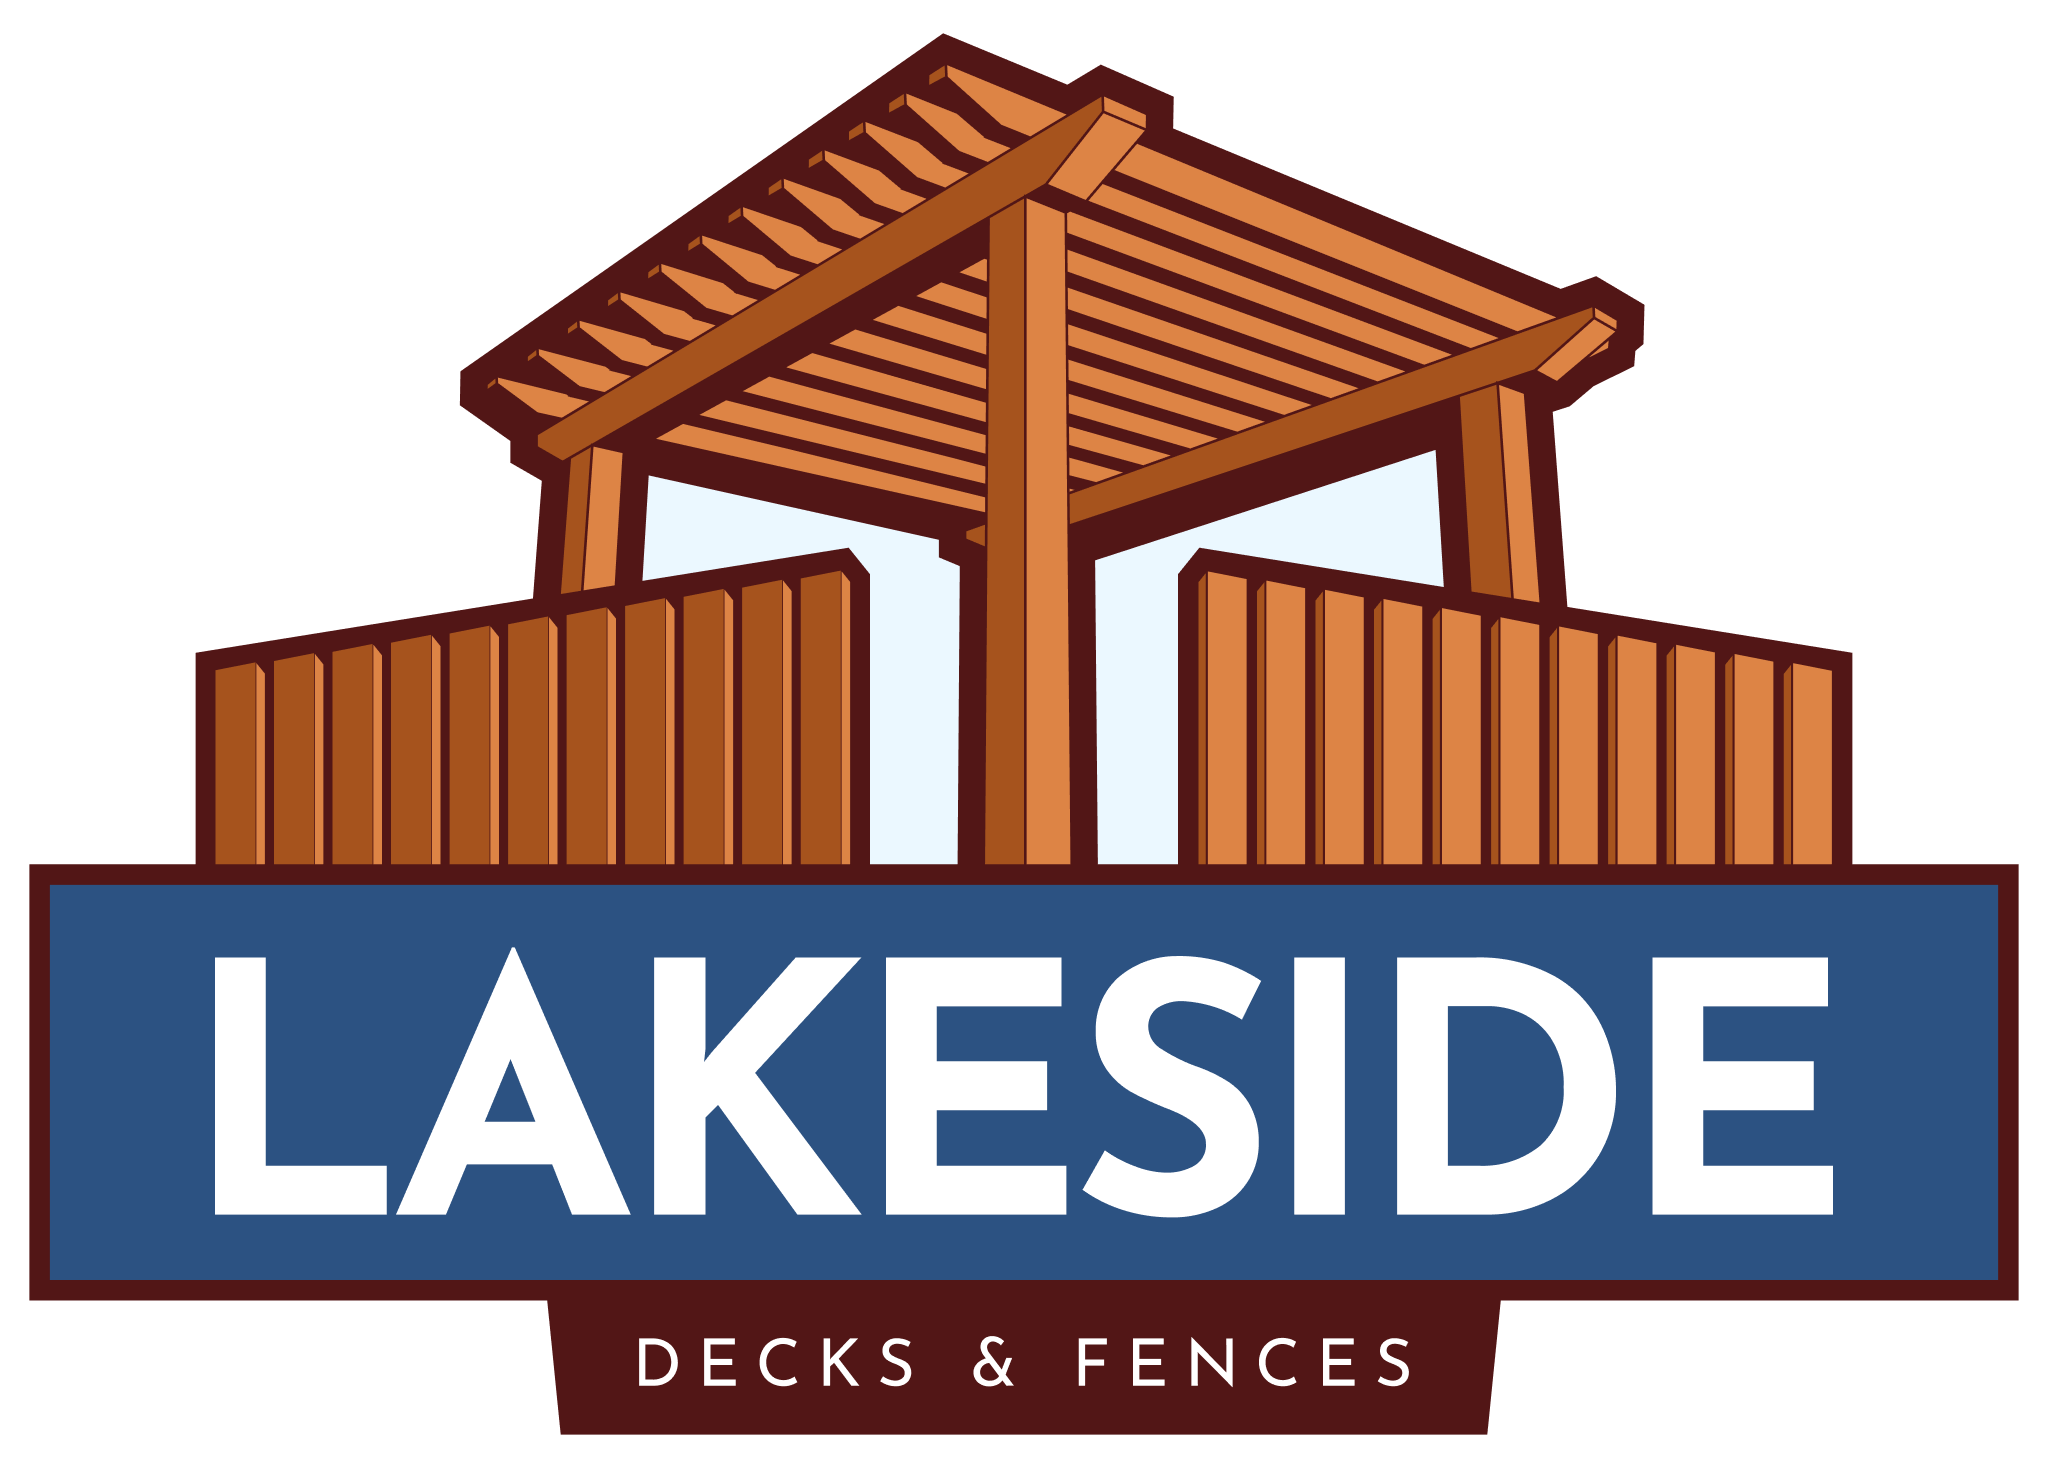 lakeside-logo-2048